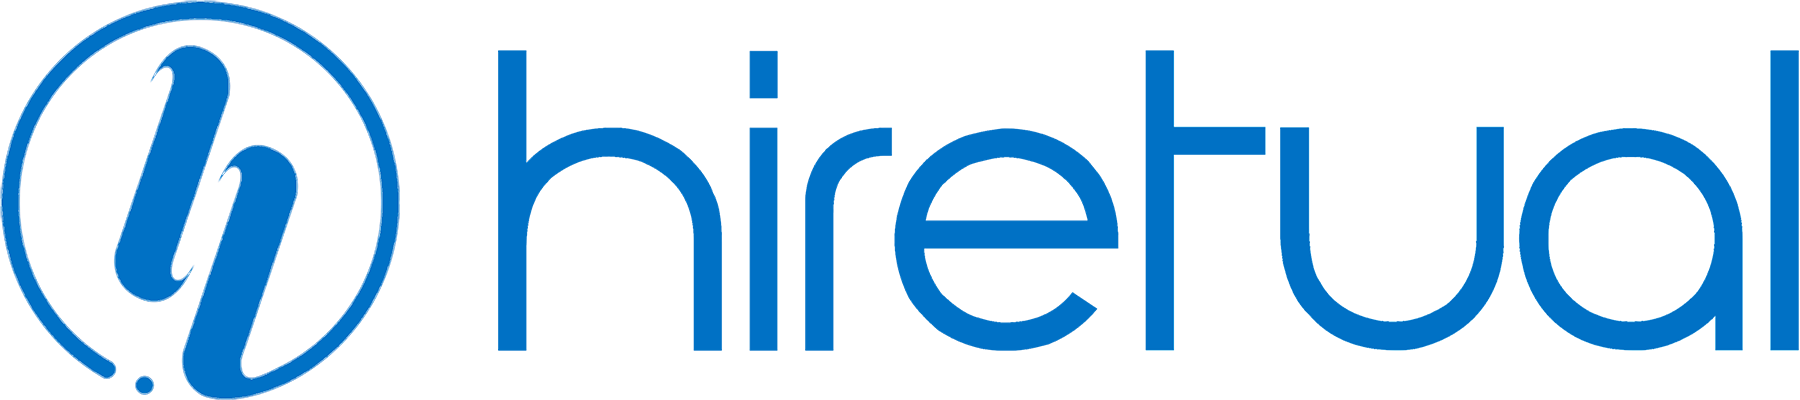 The RecTech Podcast is sponsored in part by Hiretual.